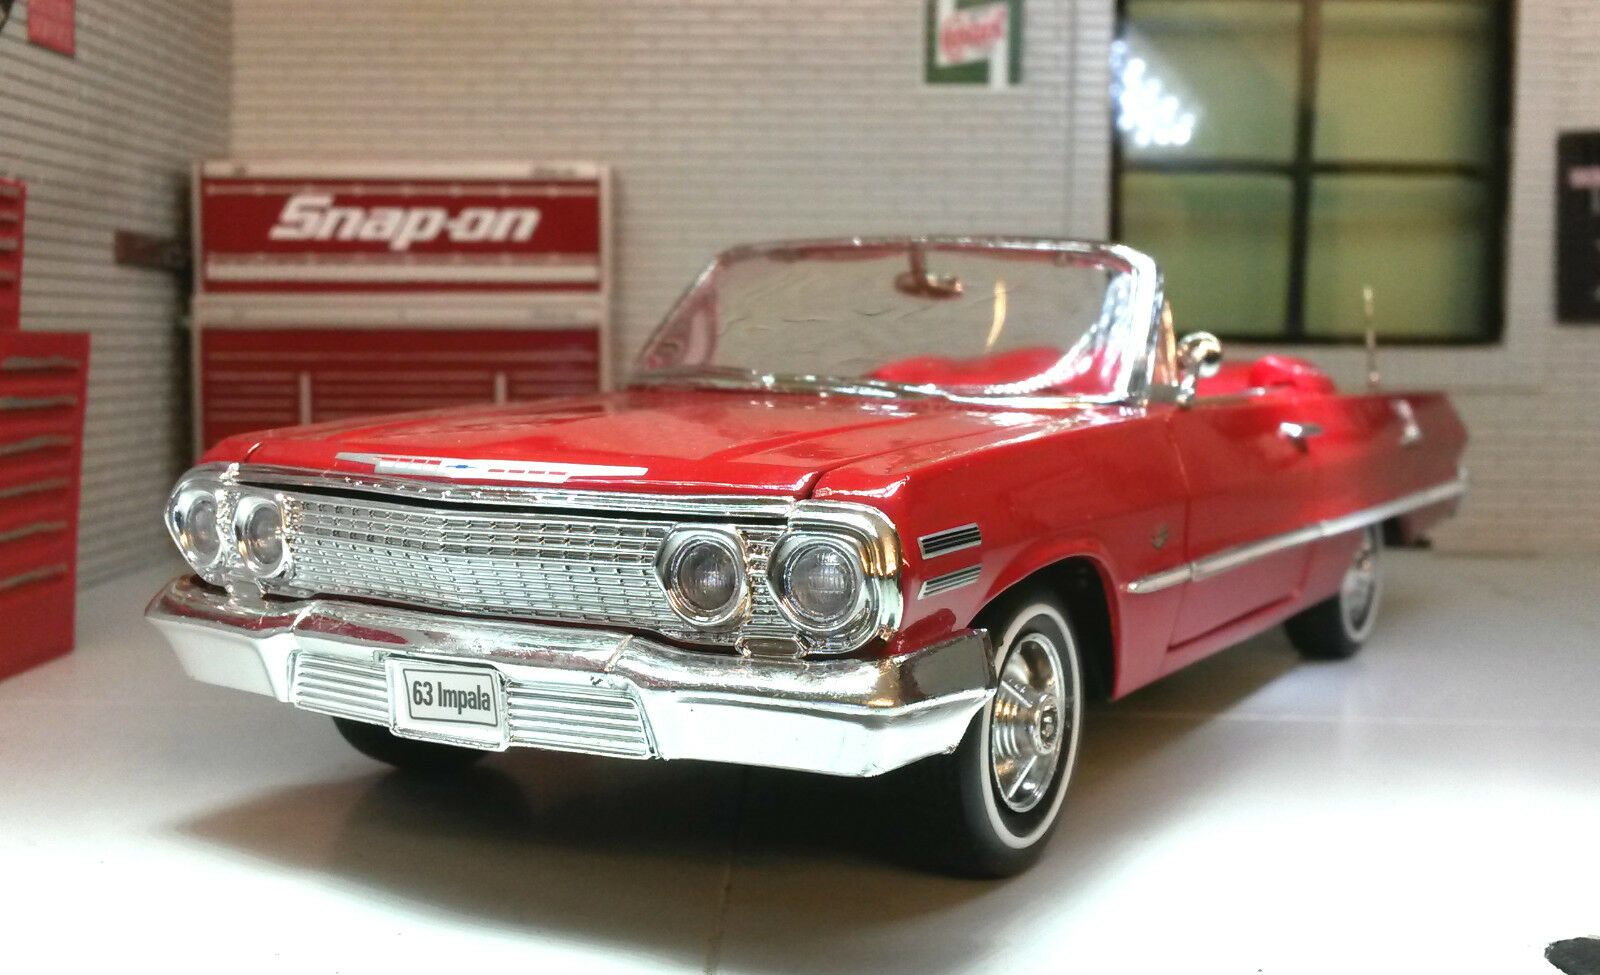 1 24 Echelle Welly Chevrolet Impala Cabriolet 1963 Voiture Miniature 22434